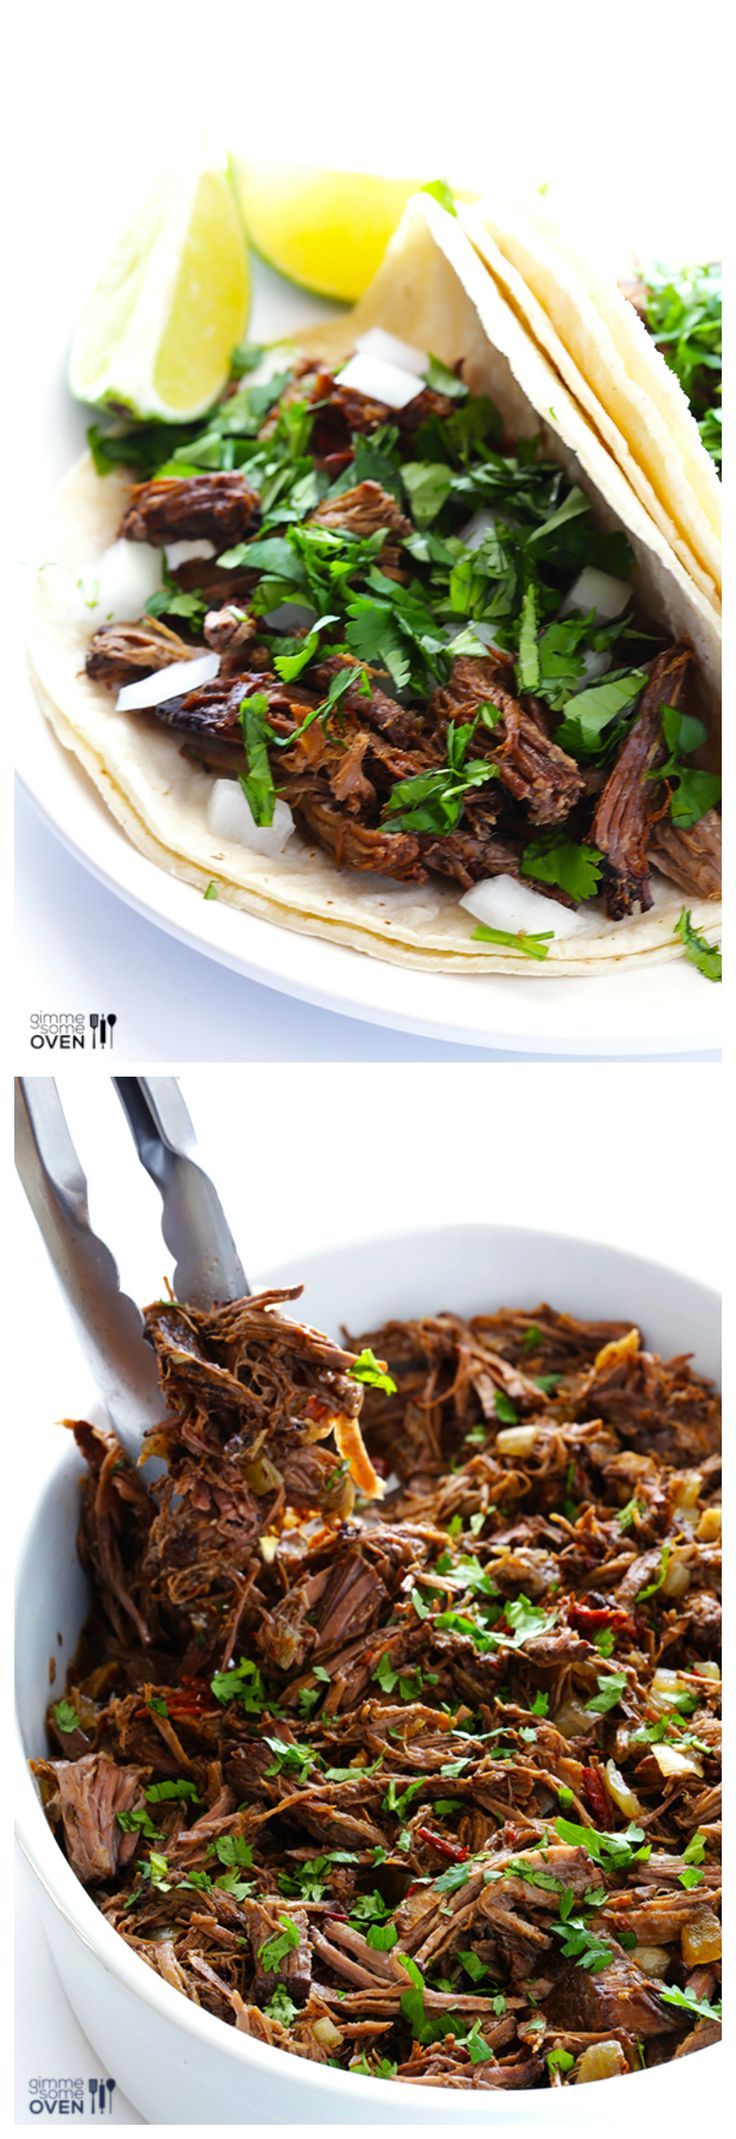 Homemade Barbacoa -- flavorful, tender, so easy to make in the slow cooker, and perfect for tacos, burritos, and more! | gimmesomeoven.com #crockpot